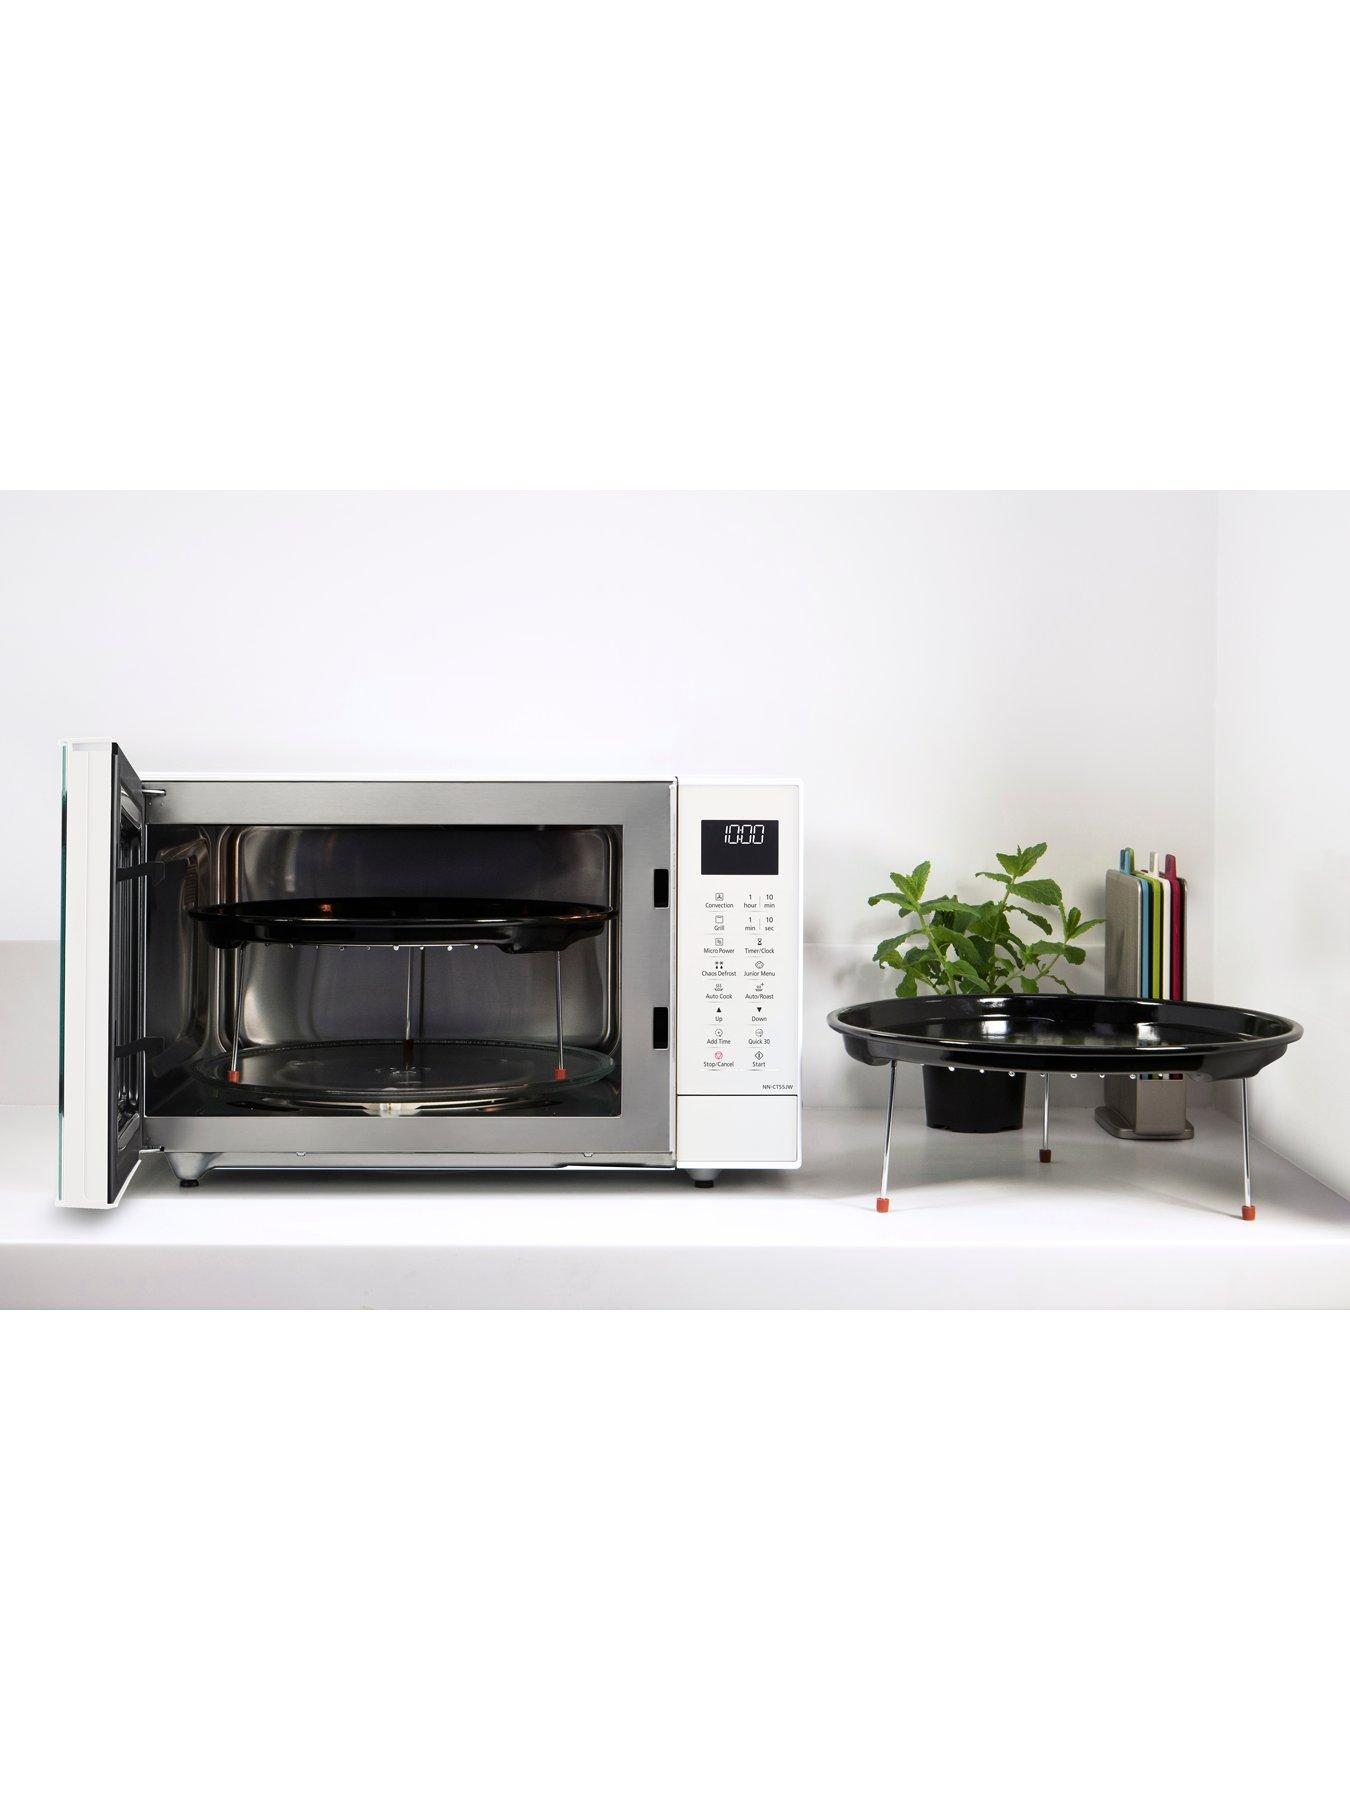 nn ct55jwbpq 27 litre combination microwave oven and grill with inverter technology